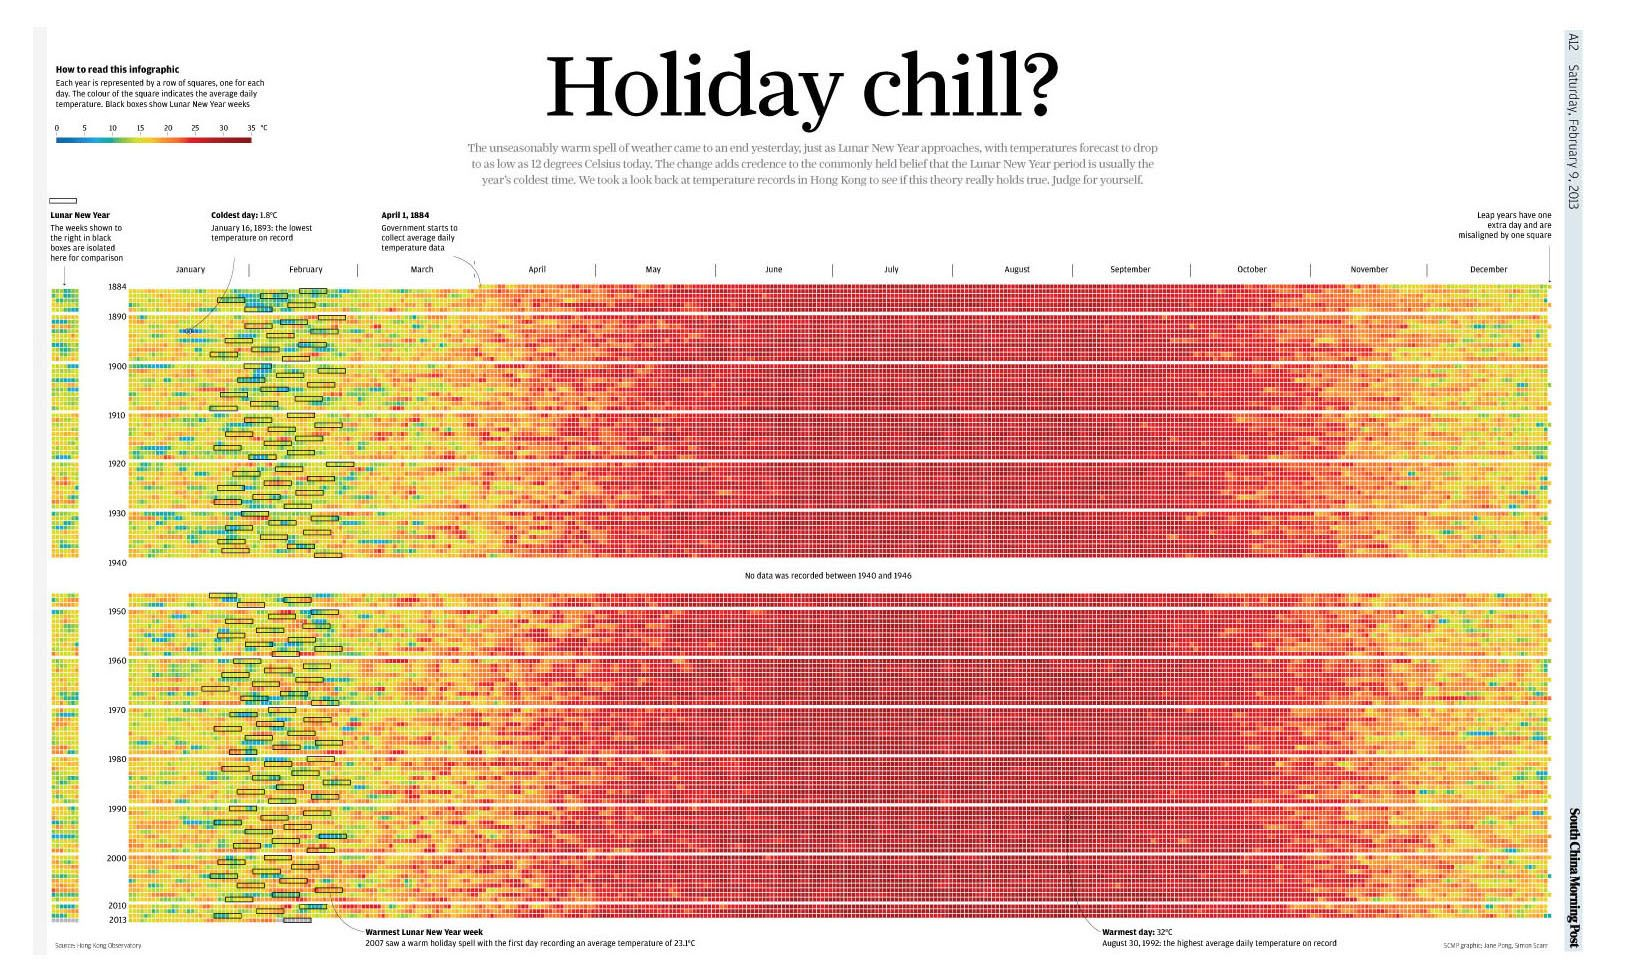 It is a commonly held belief amongst Hong Kongers that the Lunar New Year period is usually the year's coldest time. The graphic is a visualisation of daily average temperatures in Hong Kong to see whether this theory holds true. It was featured in South China Morning Post just prior to Lunar New Year in February, 2013